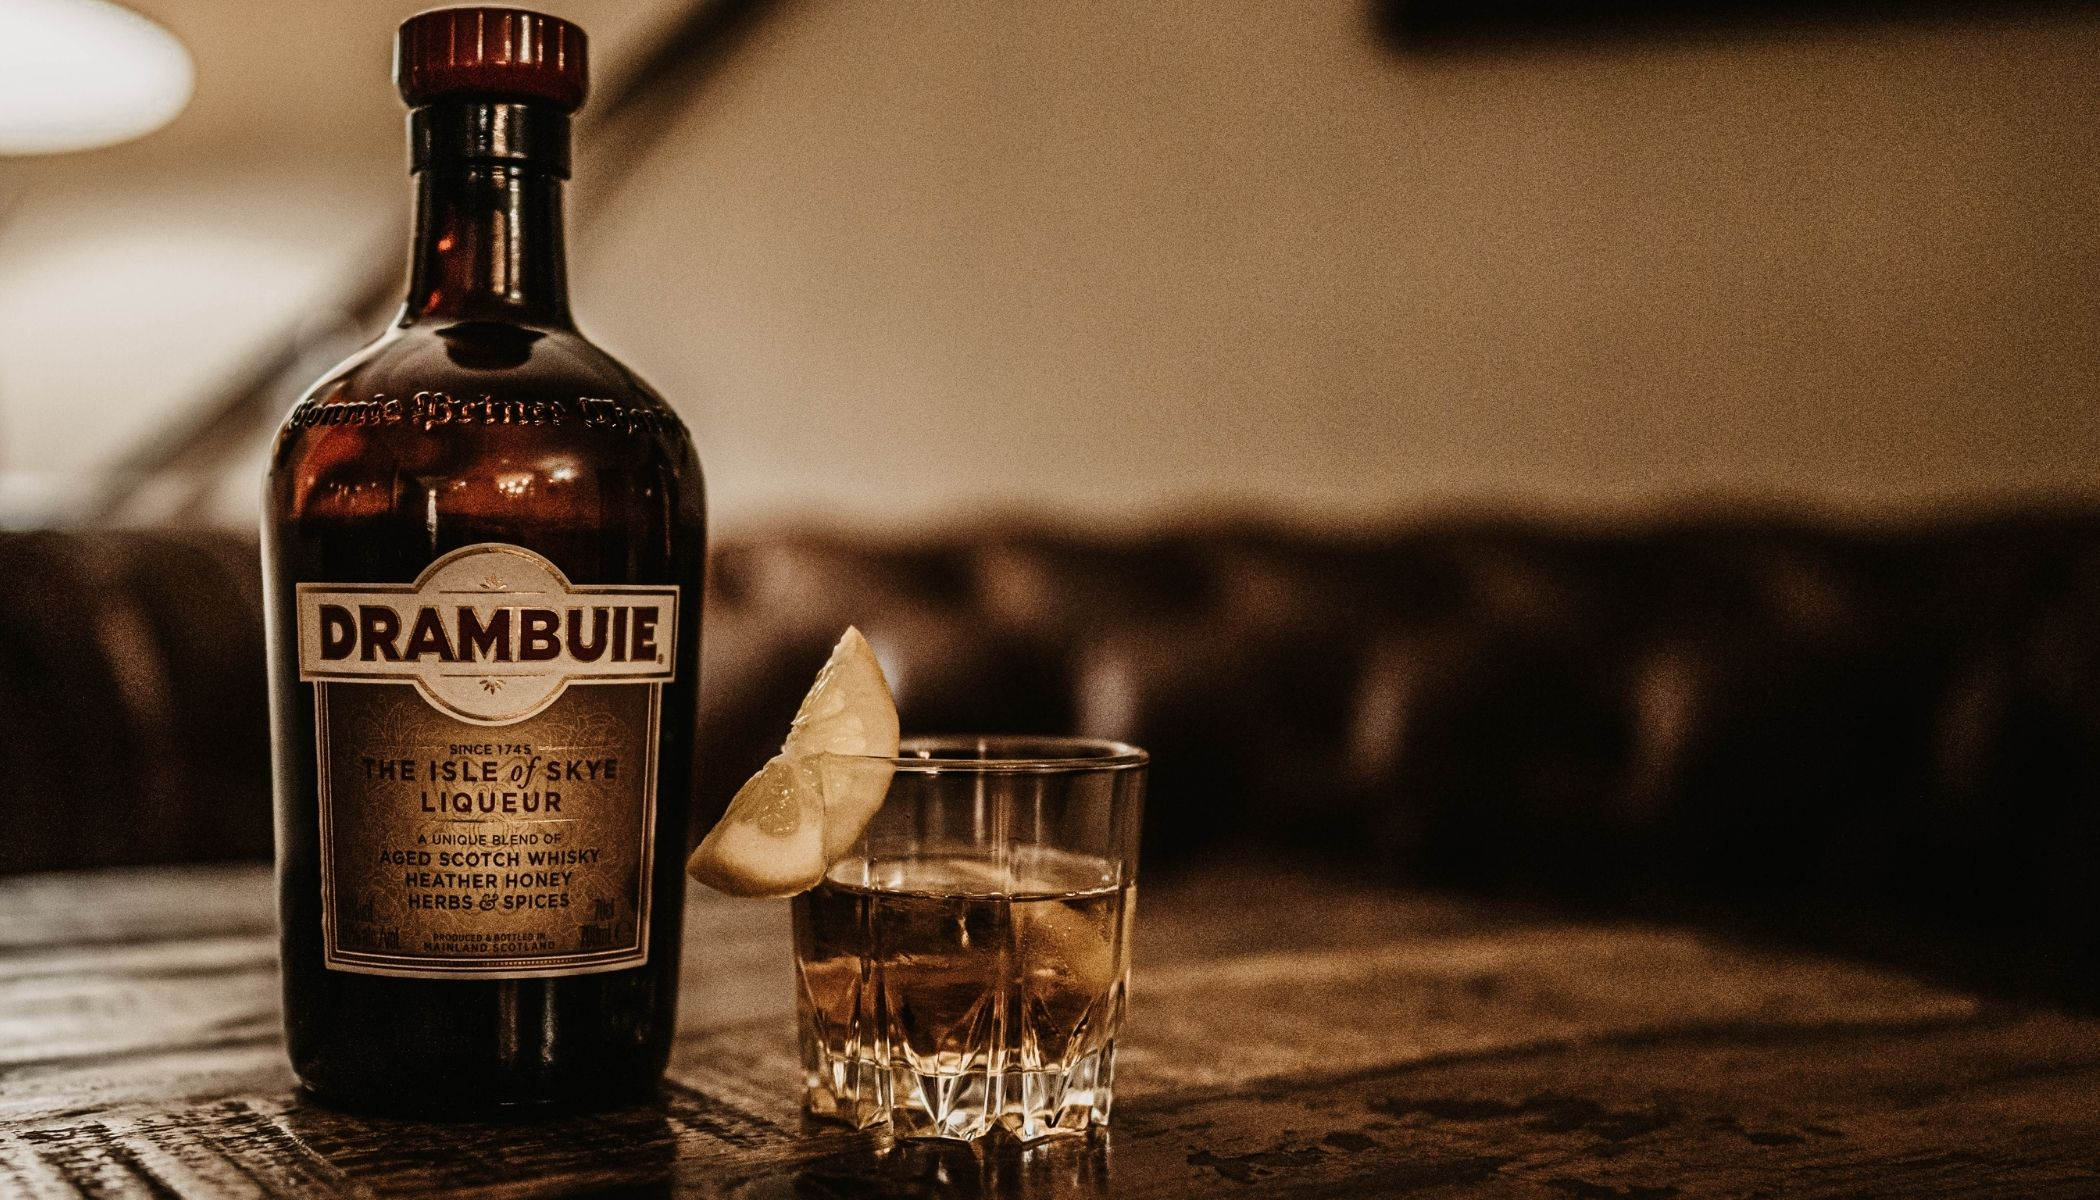 The home of Drambuie